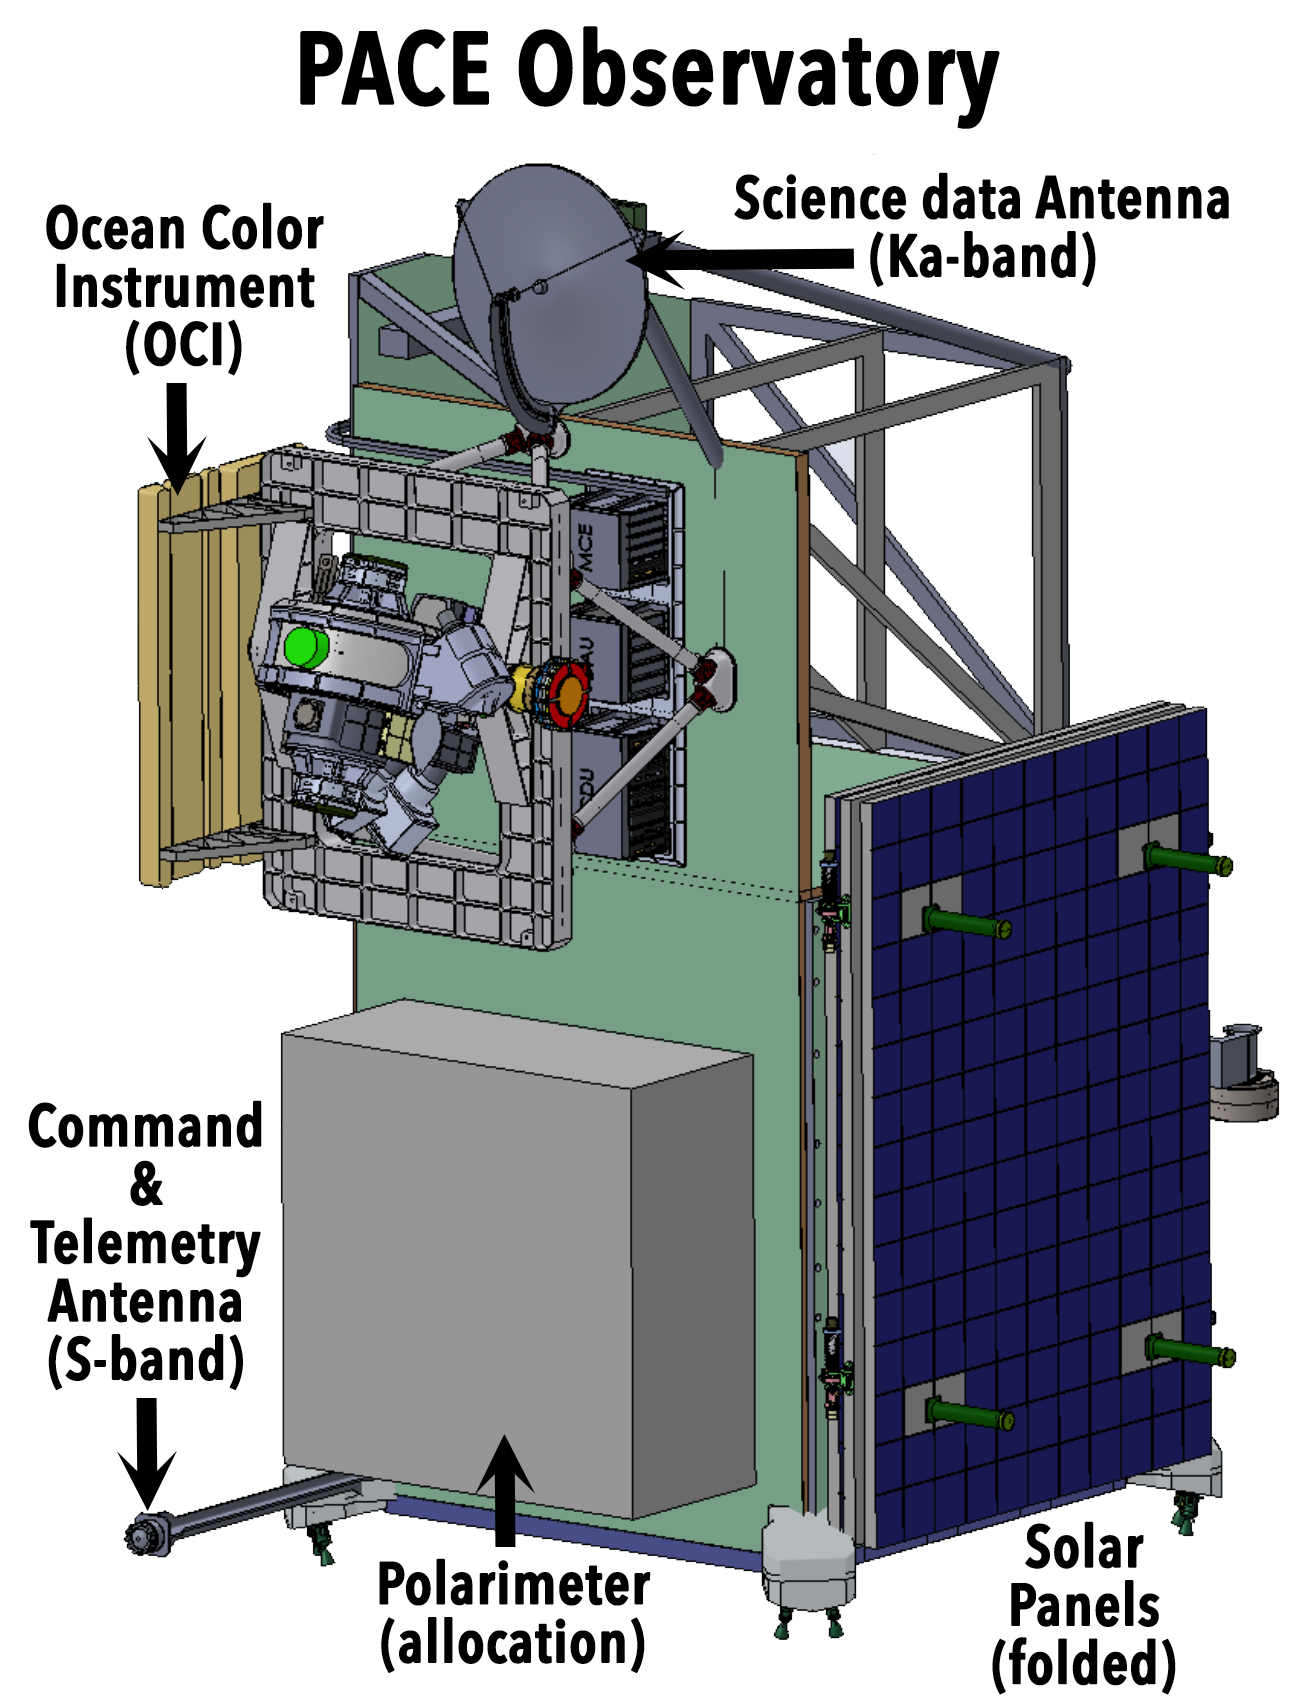 Illustration of the PACE observatory with solar panel (dark blue) deployed. In this perspective, the Ocean Color Instrument is located toward the bottom right. The S-band omni-directional command and telemetry antenna is pointing down (foreground).